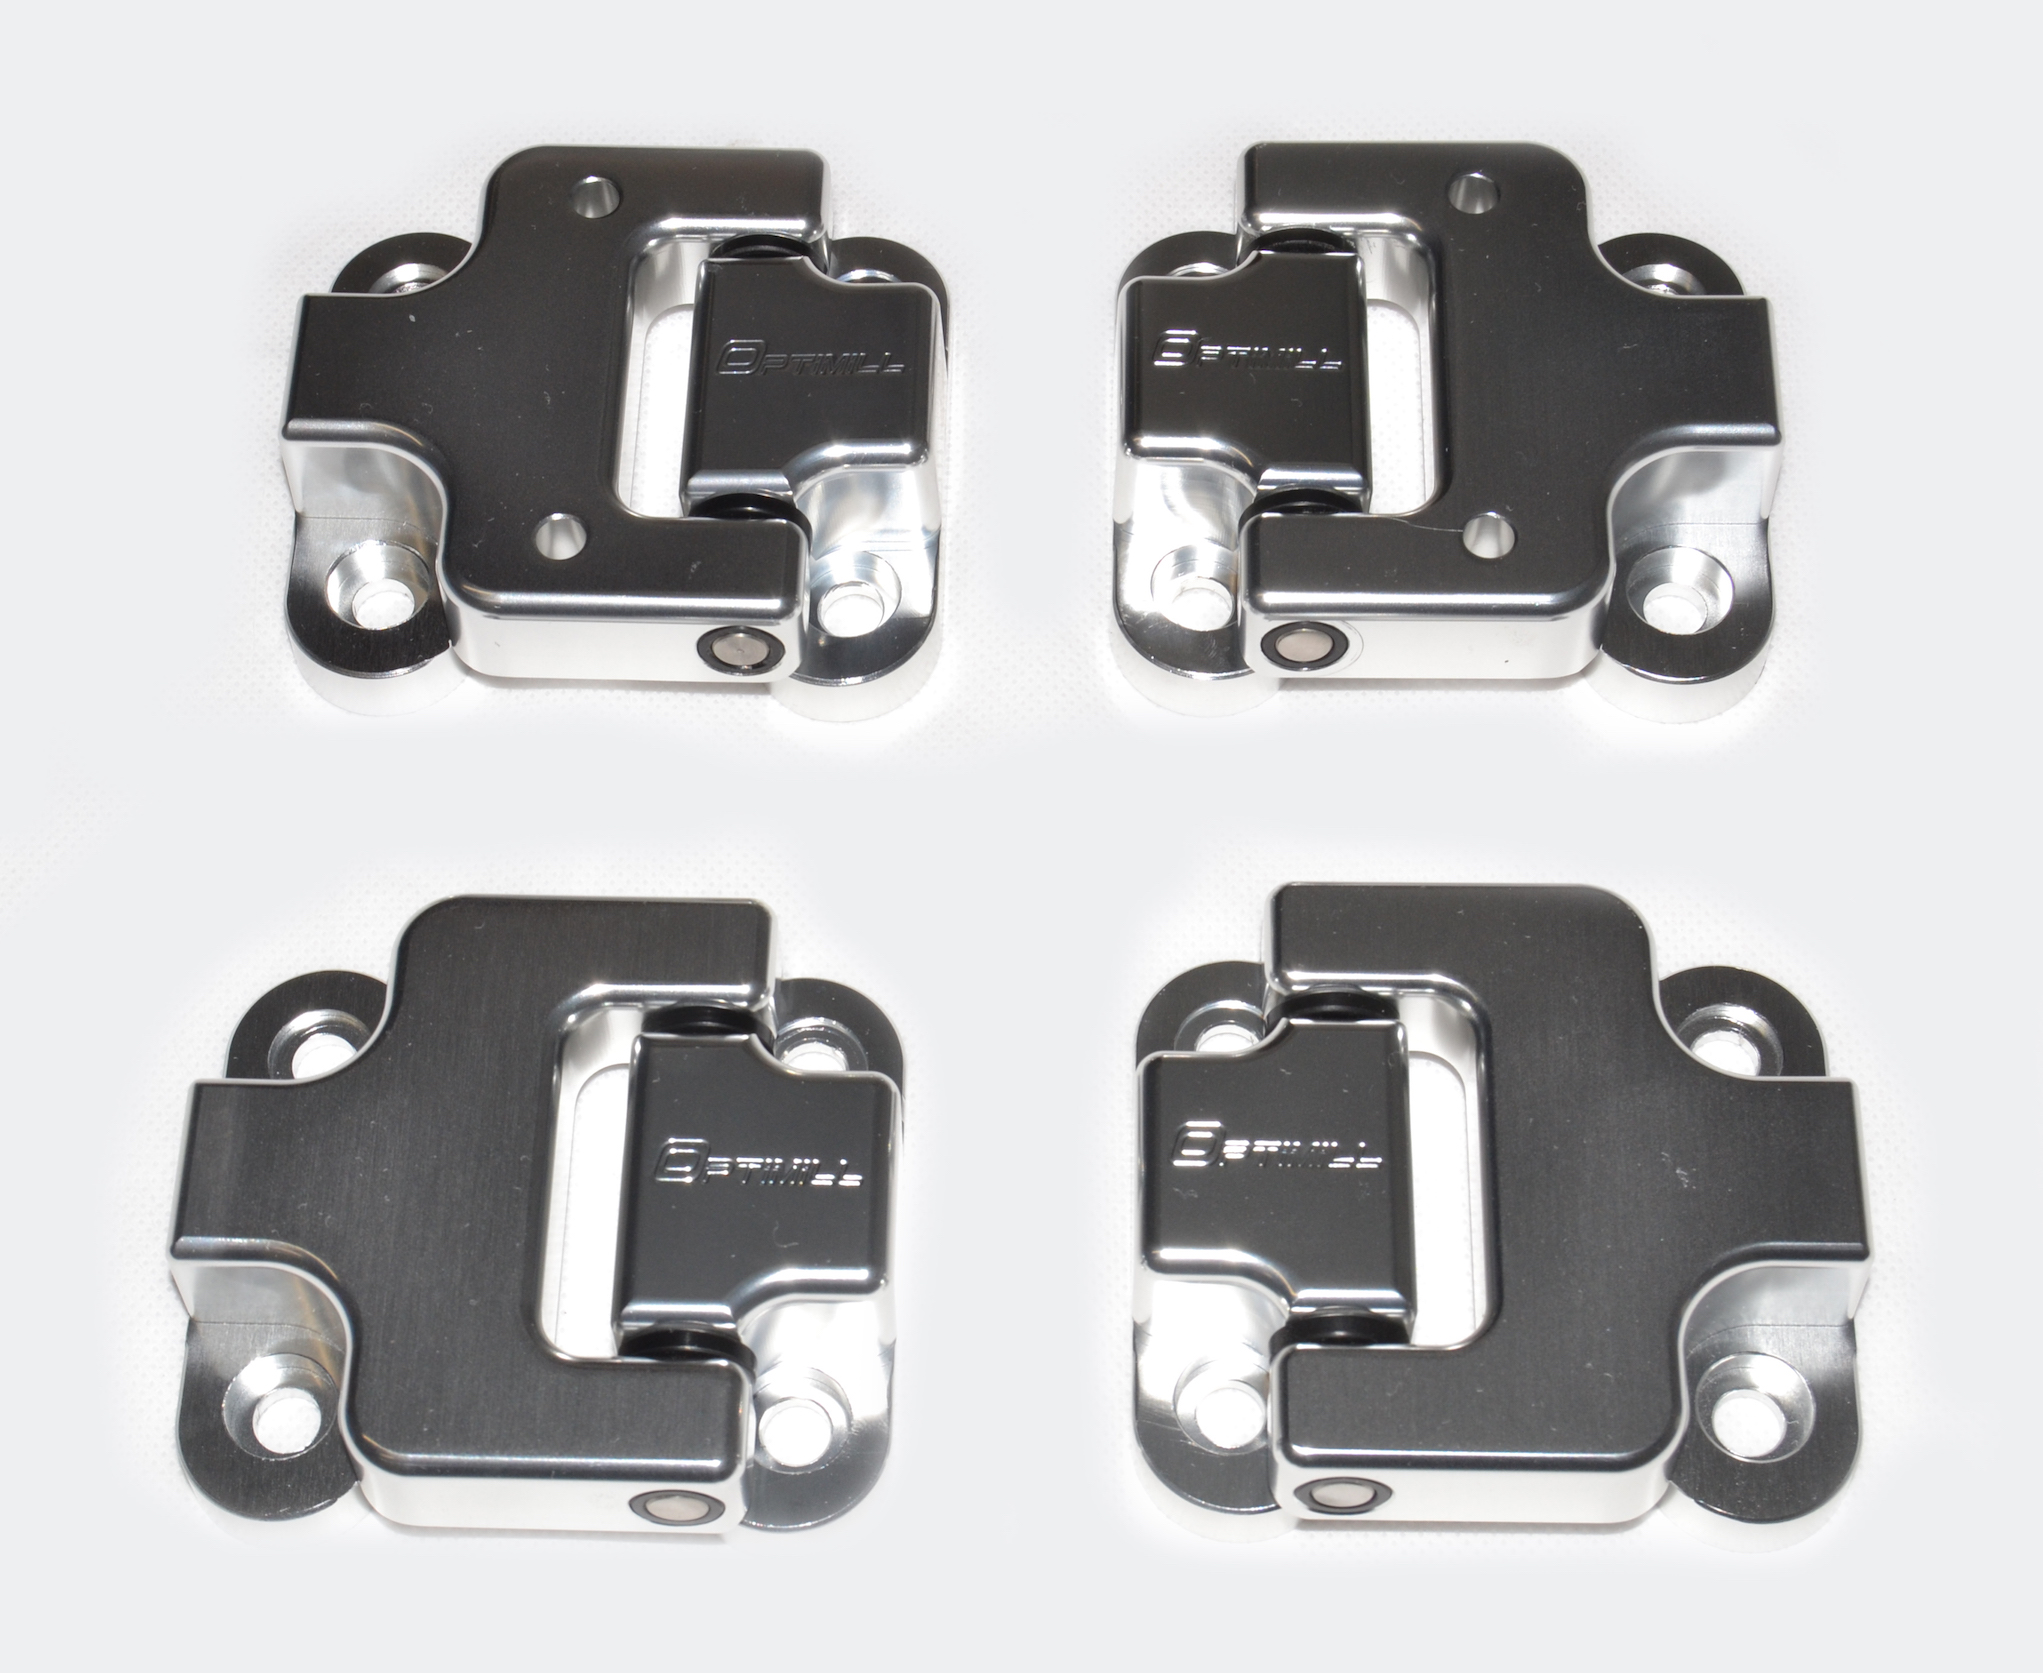 Landrover Defender Front Door Hinges 90 set of 4 in Silver